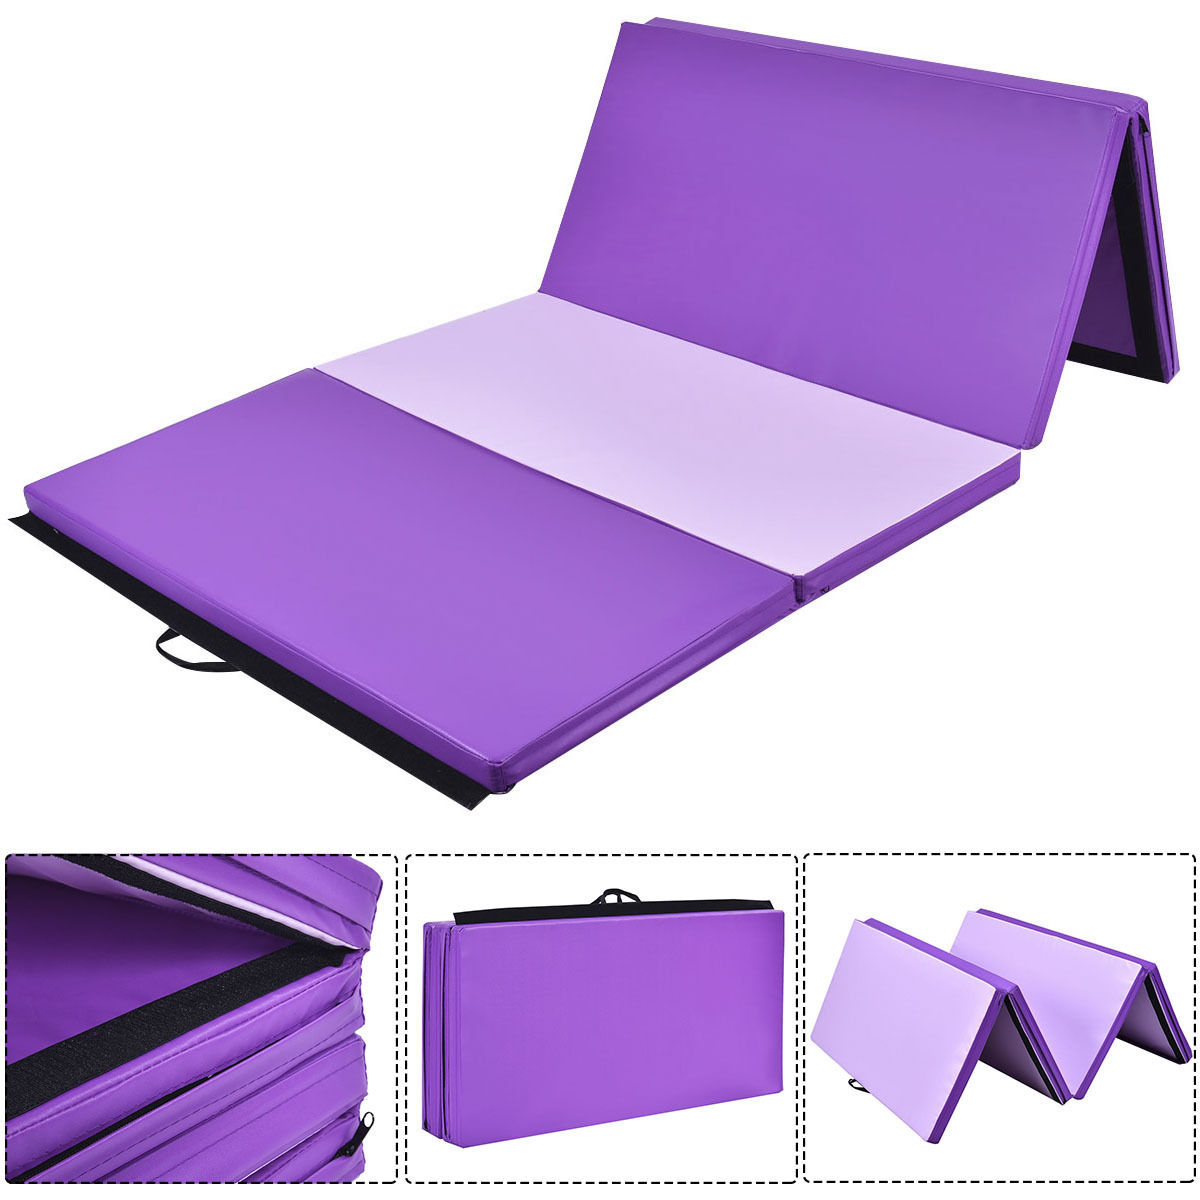 Costway 4'x8'x2'' Gymnastics Mat Thick Folding Panel Gym Fitness Exercise Mat Purple/Pink